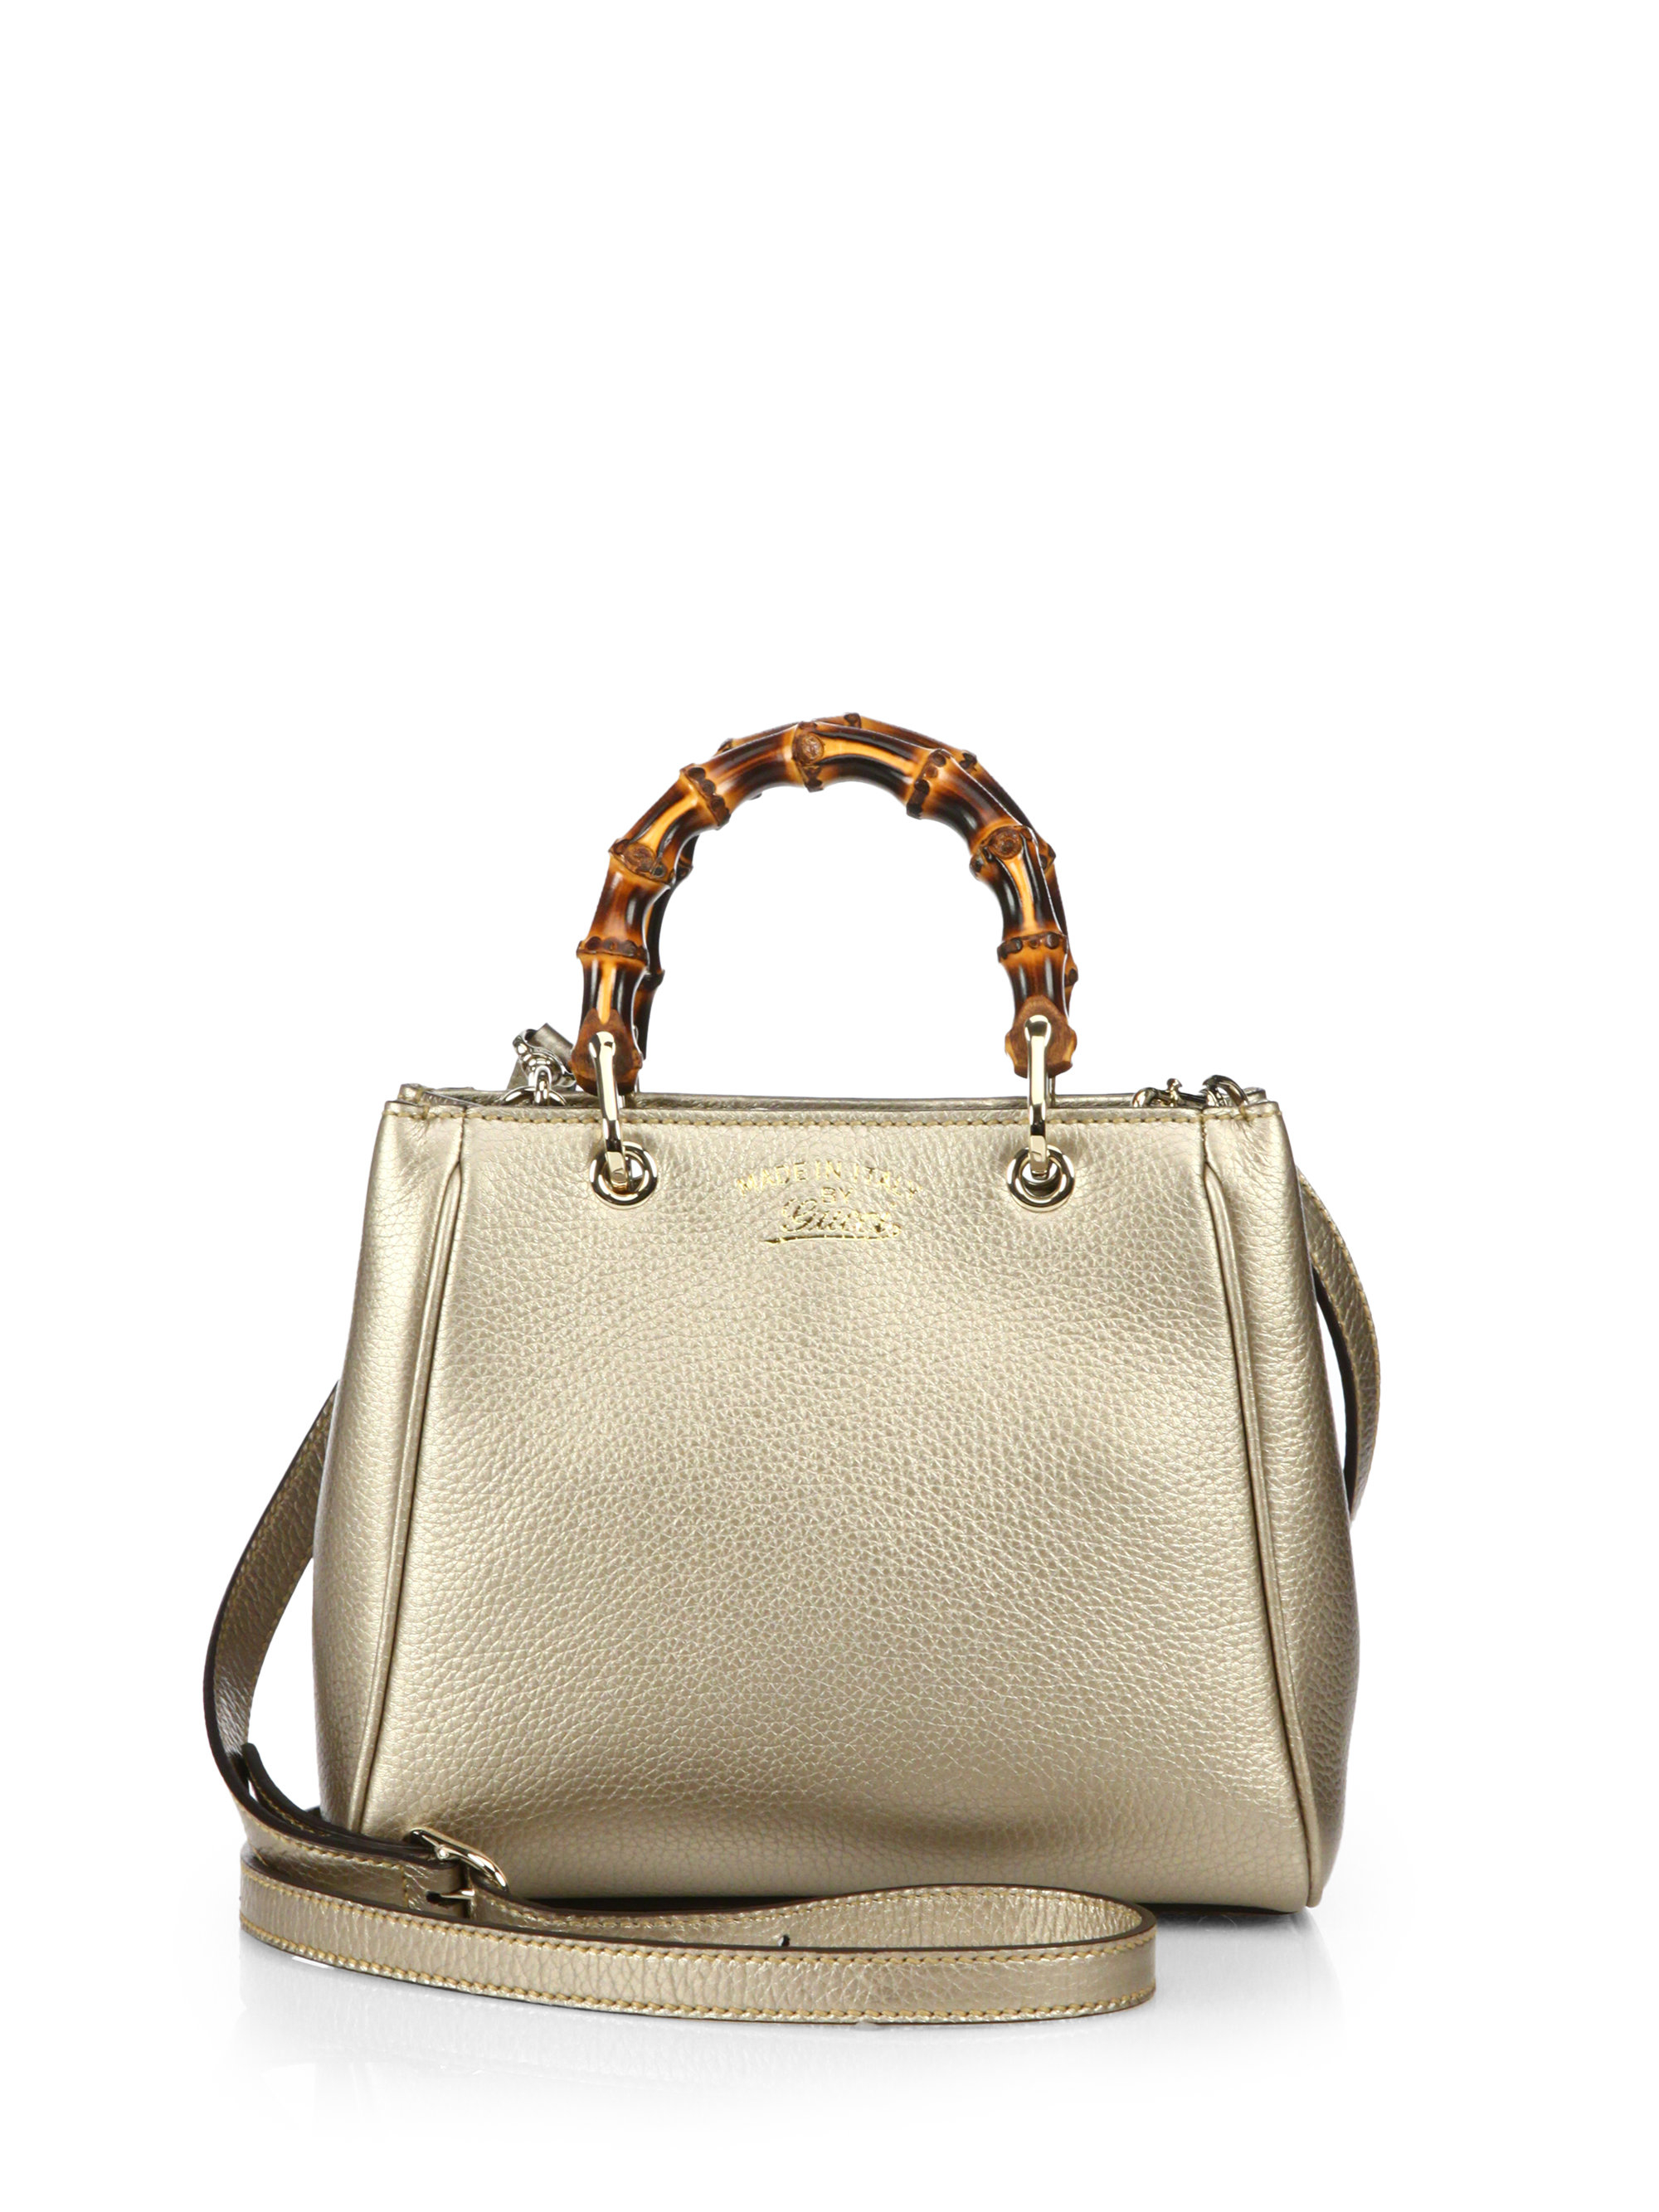 97378465b3ef Gallery. Previously sold at: Saks Fifth Avenue · Women's Gucci Bamboo